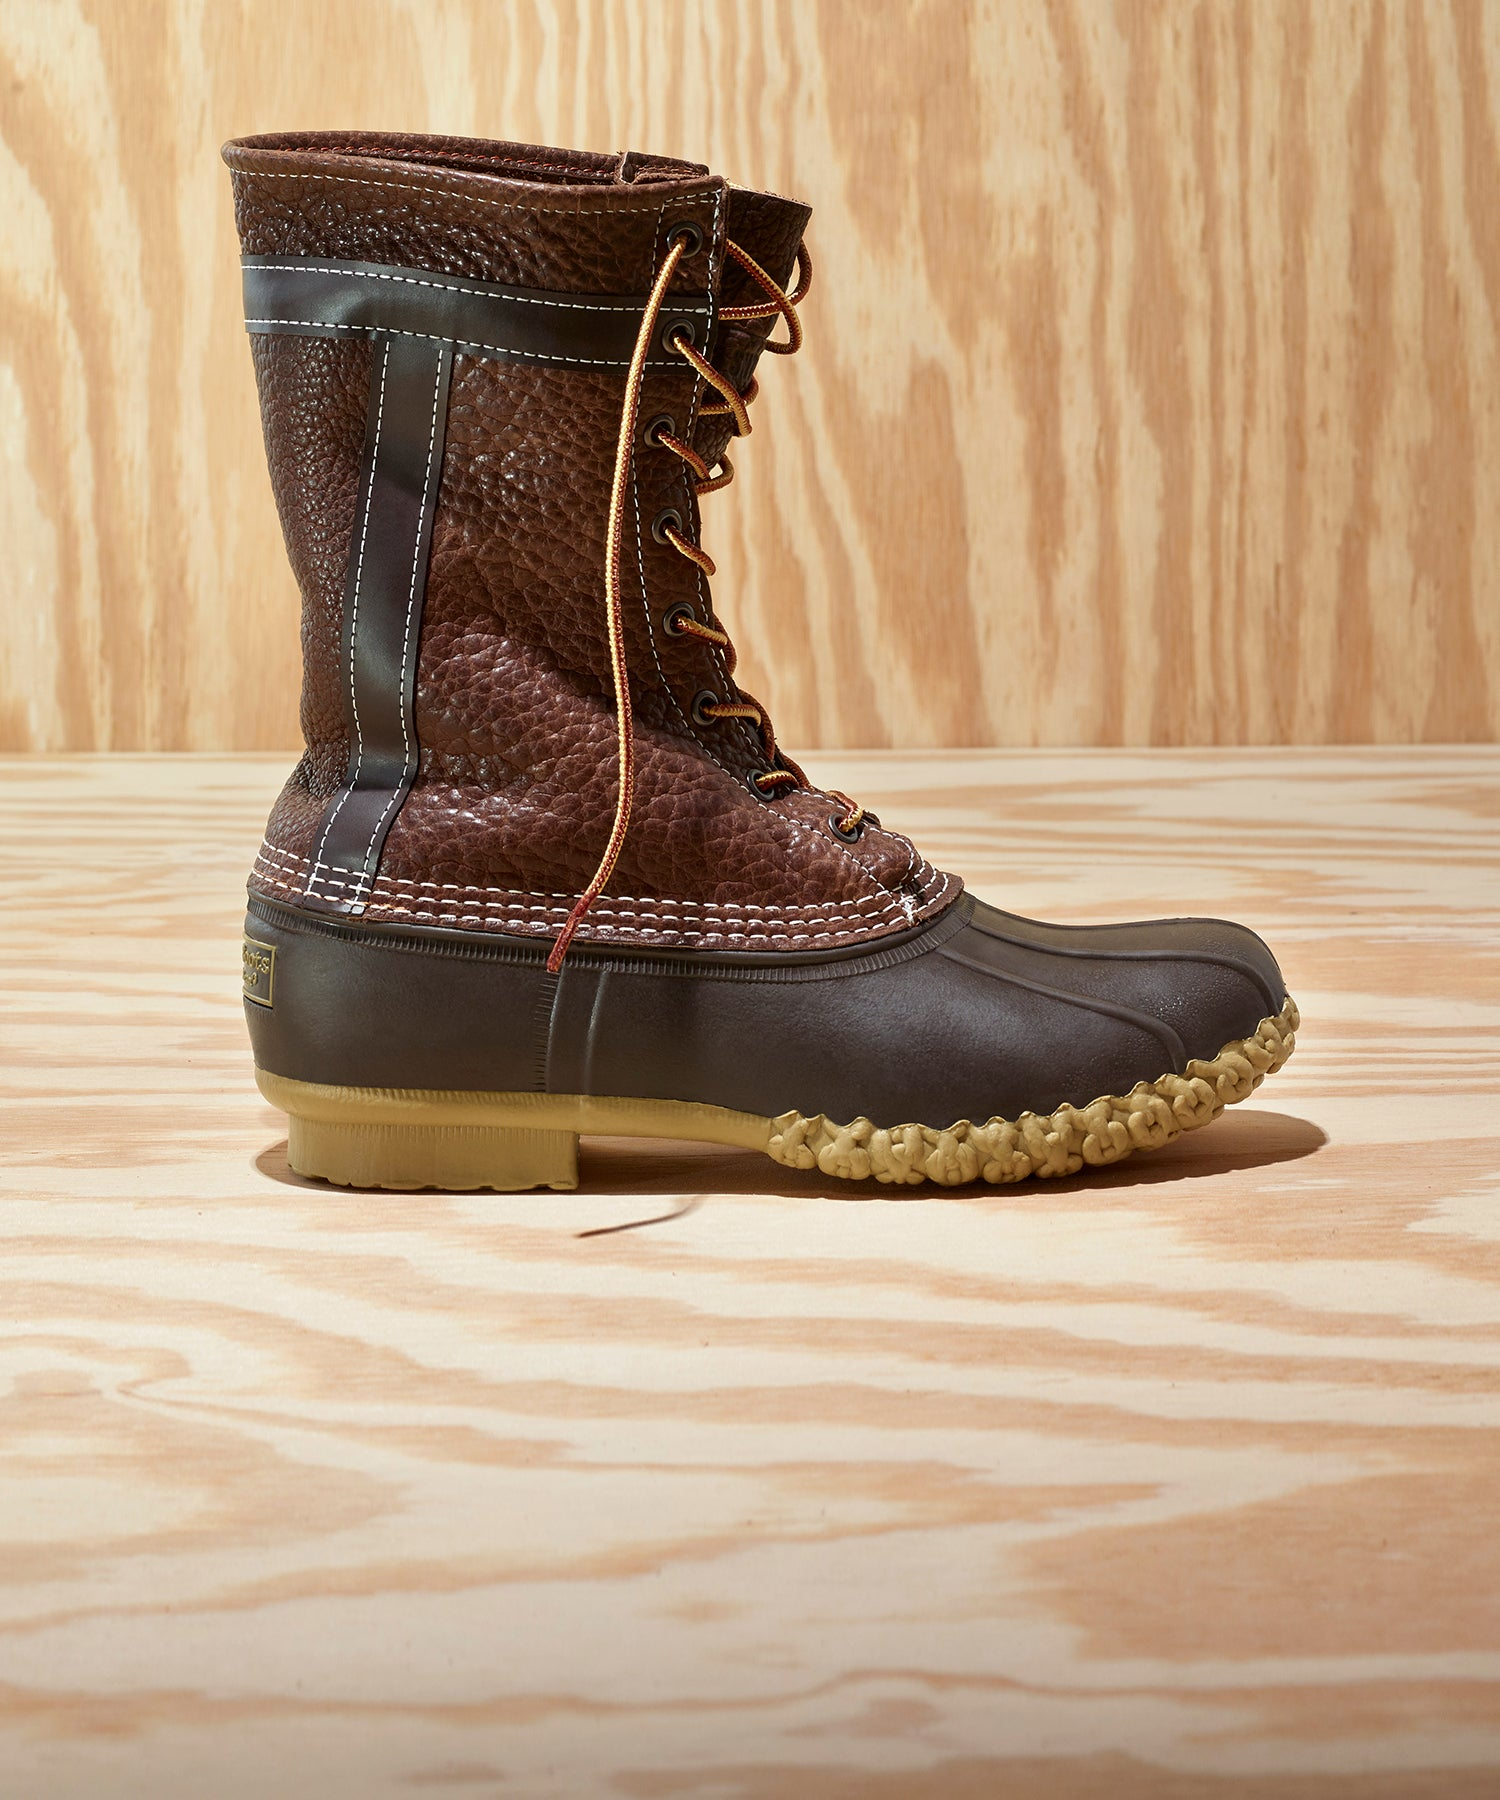 L.L.Bean x Todd Snyder Bean Boot in Chocolate Bison Leather